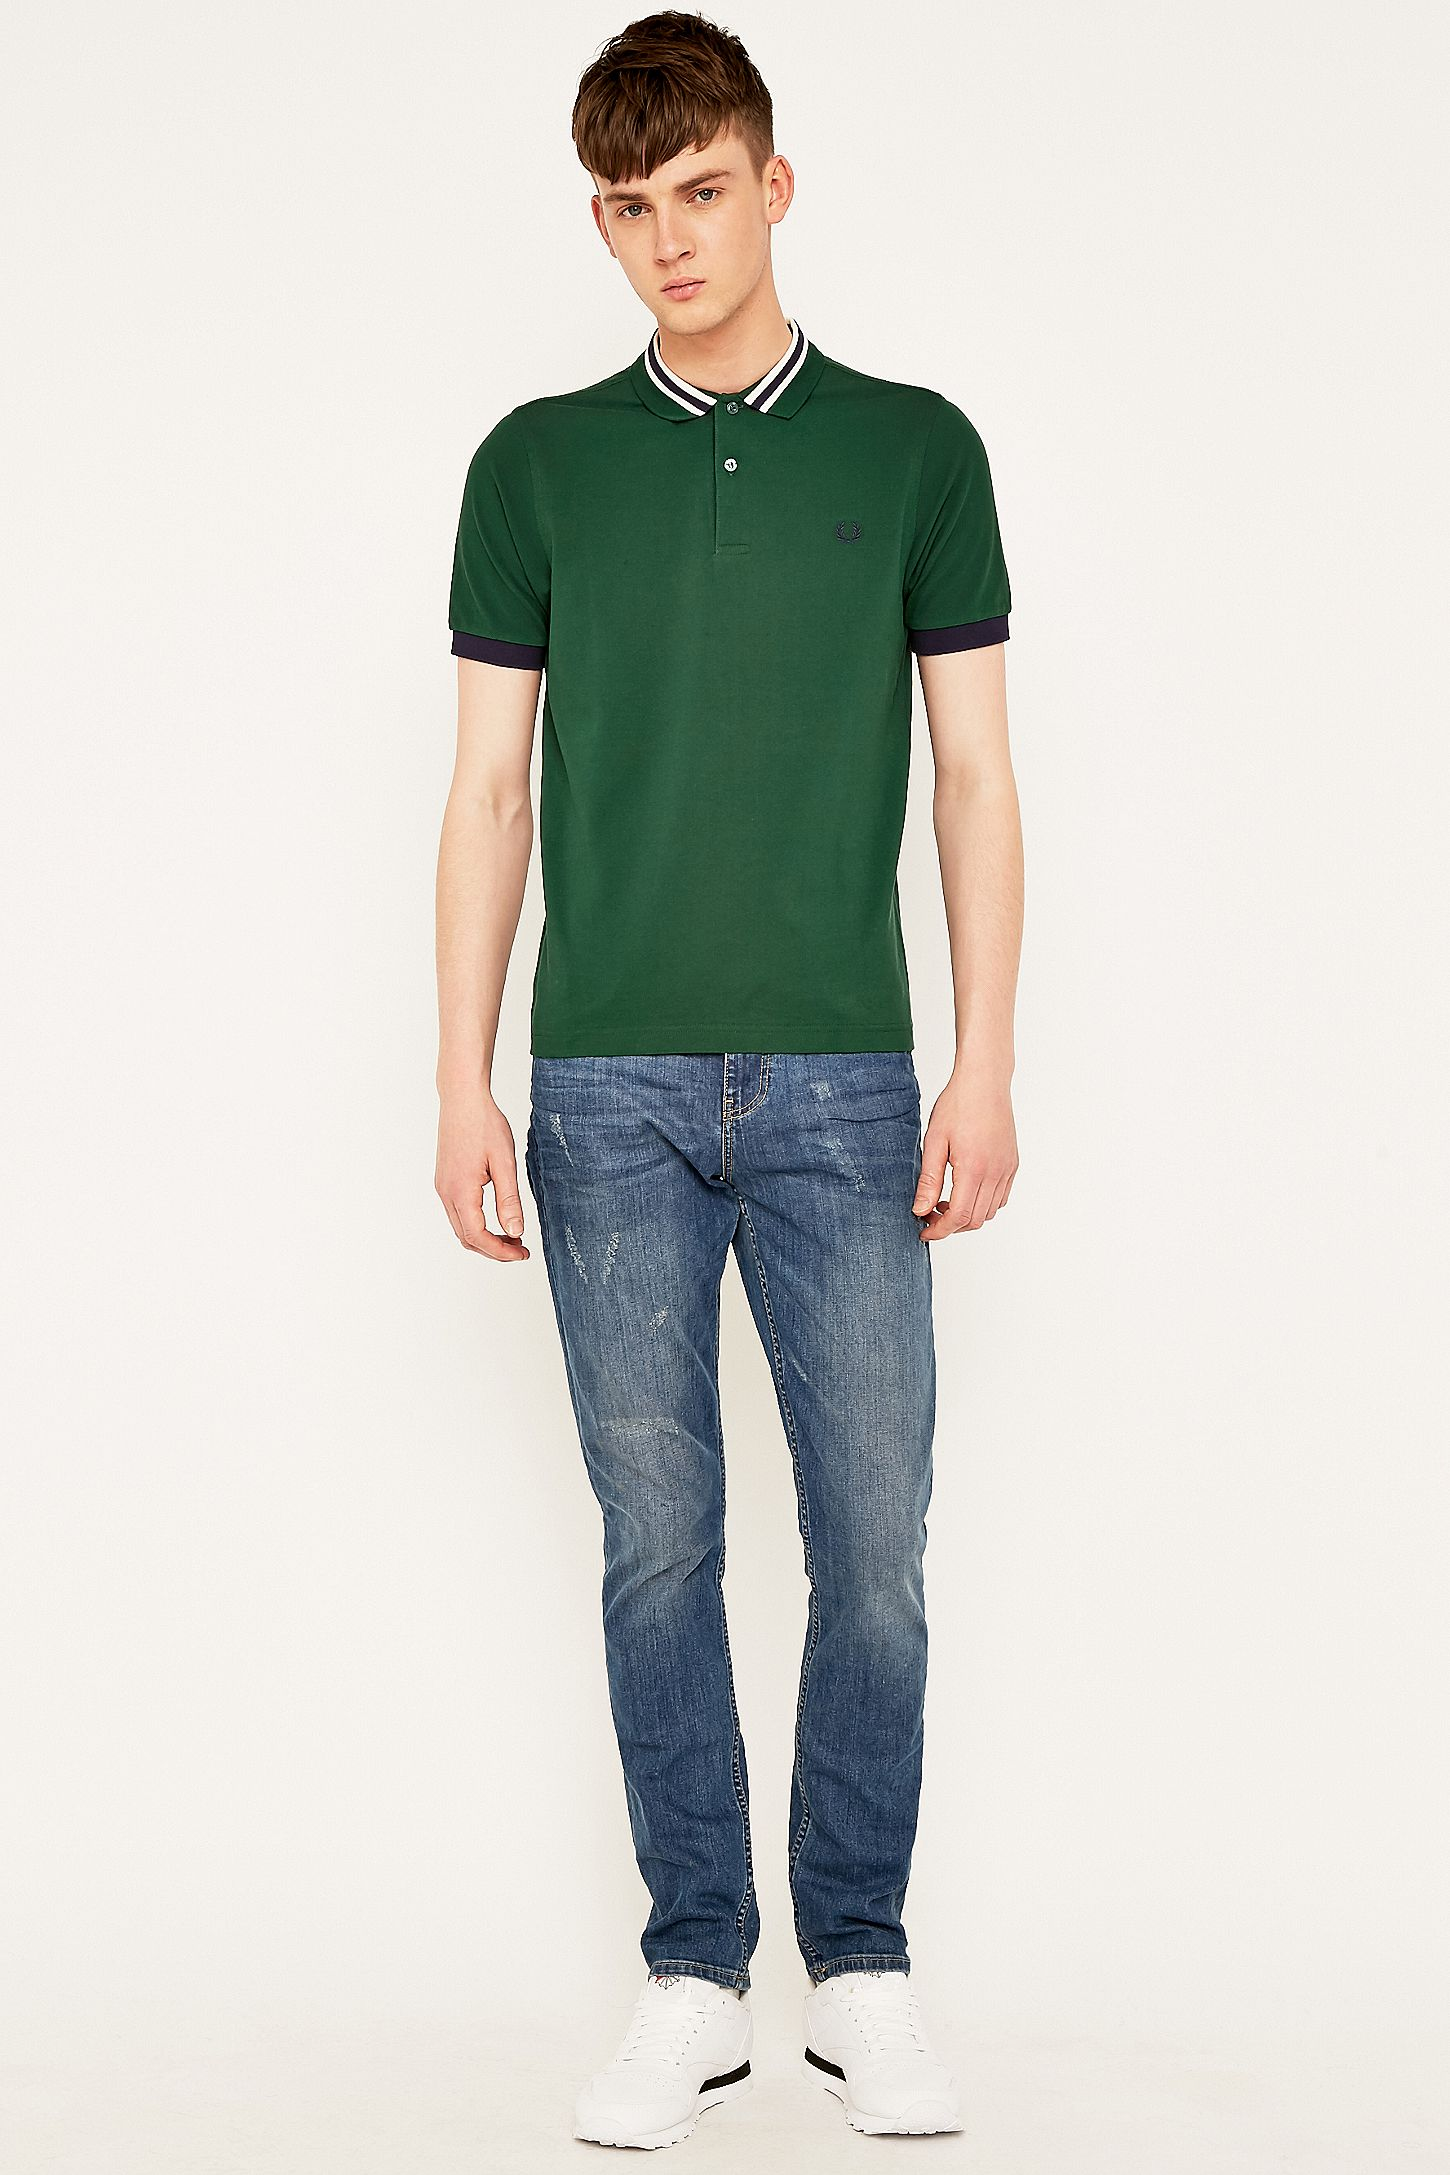 2cc85012 Fred Perry Ivy Bomber Stripe Polo Shirt. Click on image to zoom. Hover to  zoom. Double Tap to Zoom